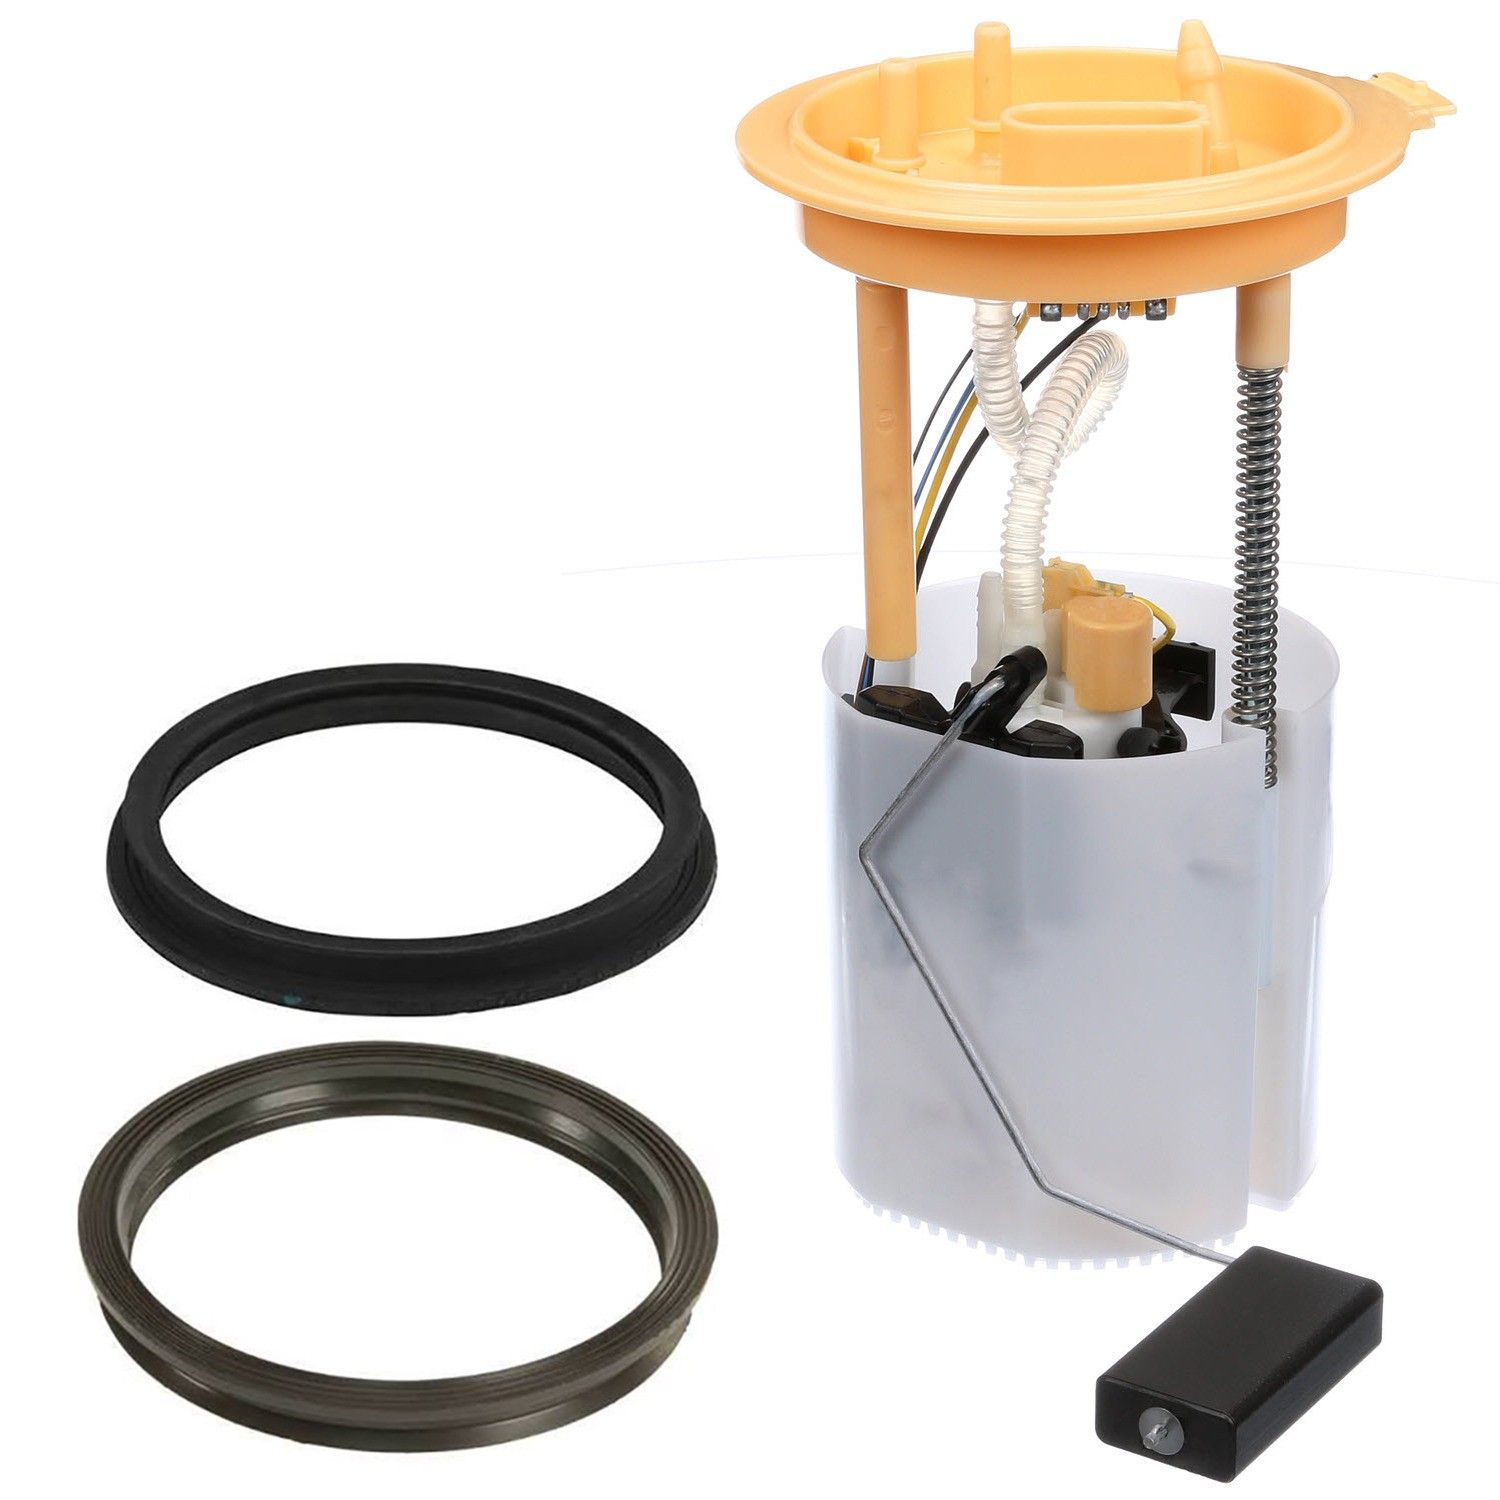 Volkswagen Beetle Fuel Pump Module Assembly Replacement Airtex New Electric Gas Vw With Sending Unit 28e8d25